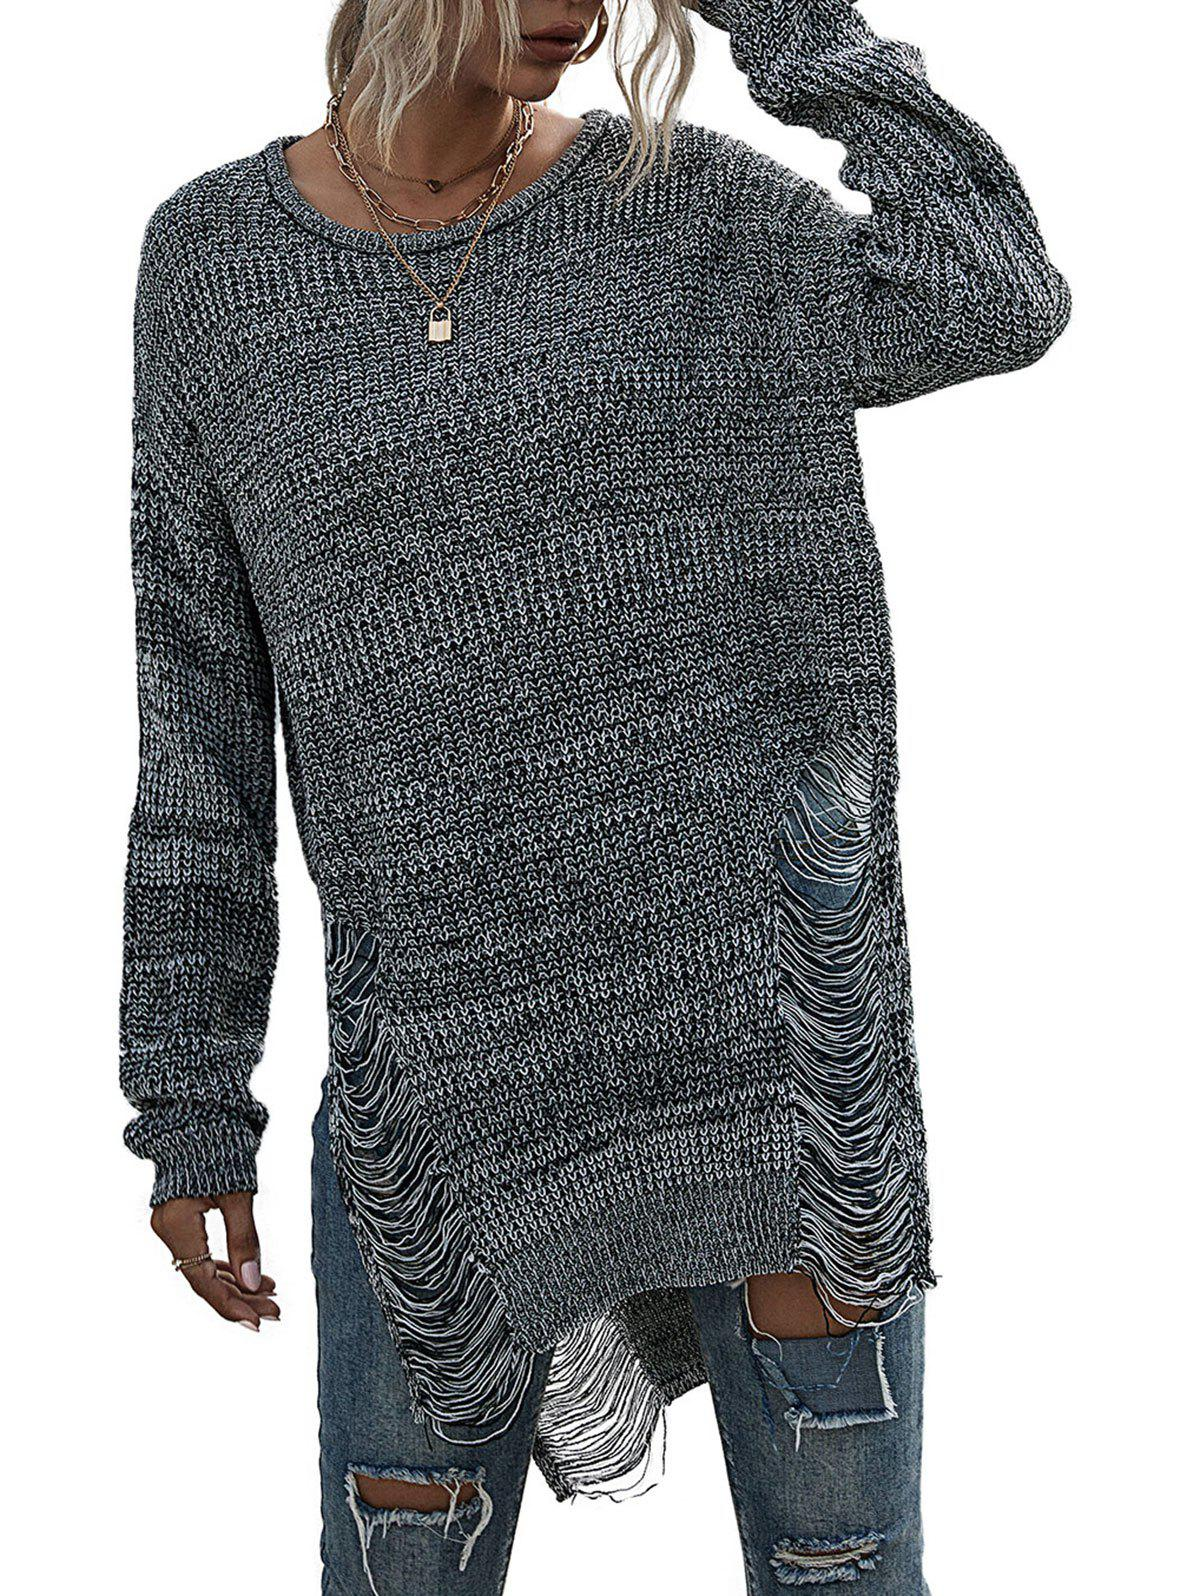 Distressed Ripped Marled Slit Tunic Sweater - GRAY S